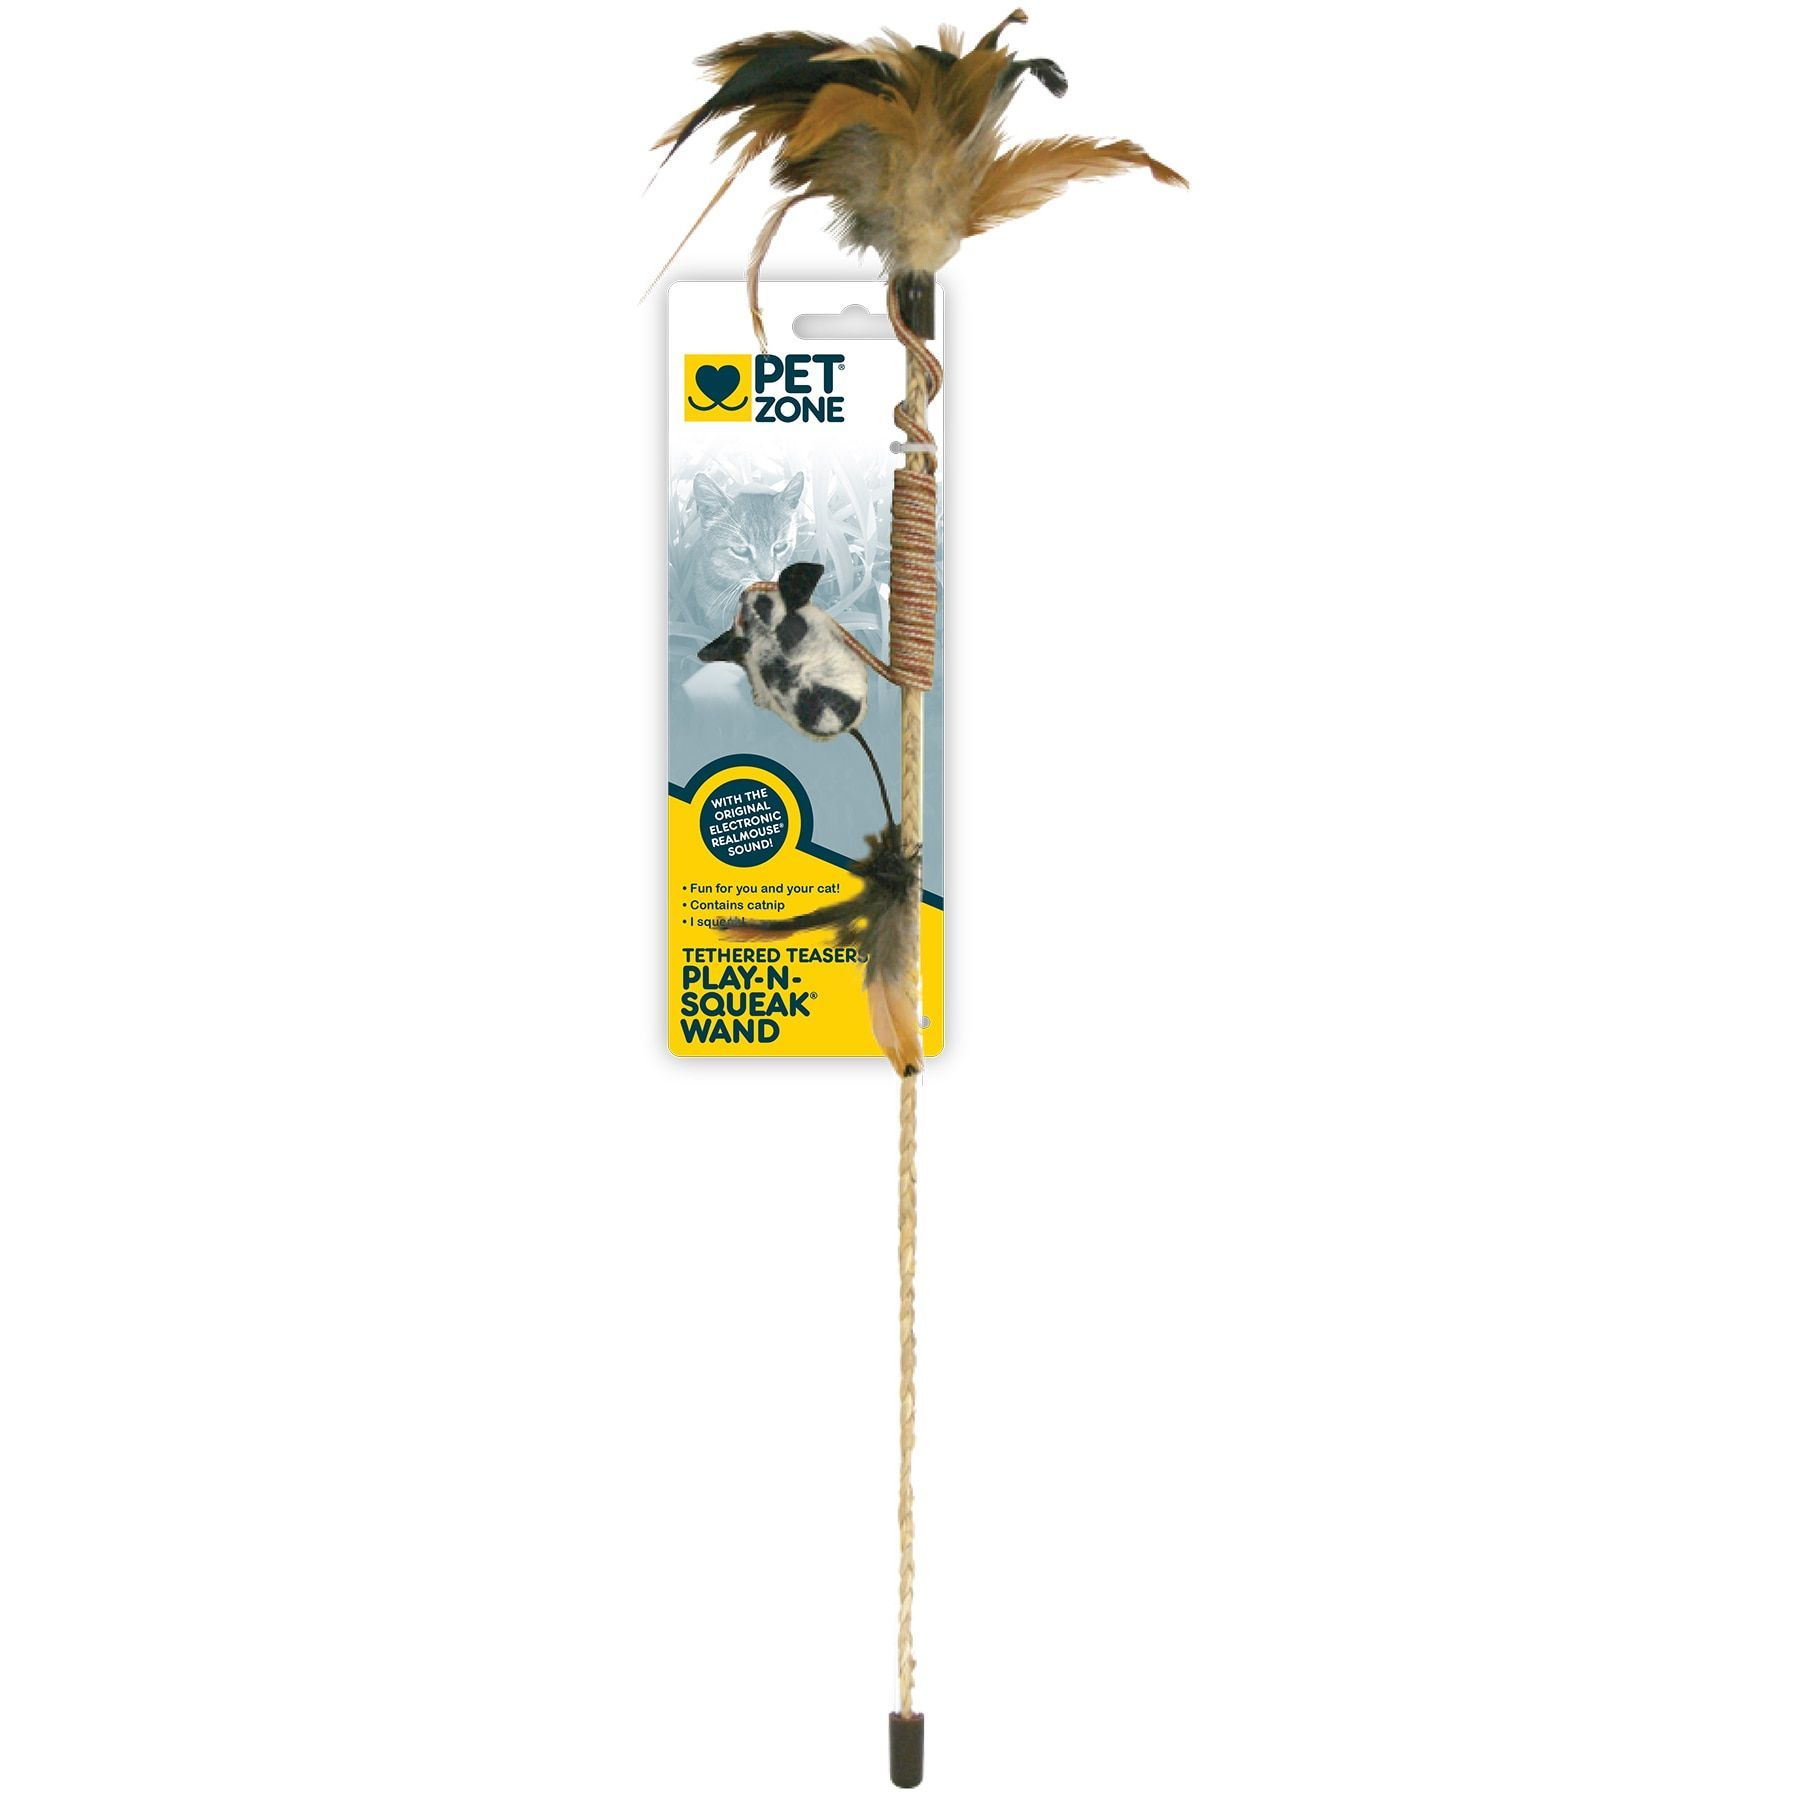 Pet Zone Tethered Tresures Play N Squeak Wand Cat Toy